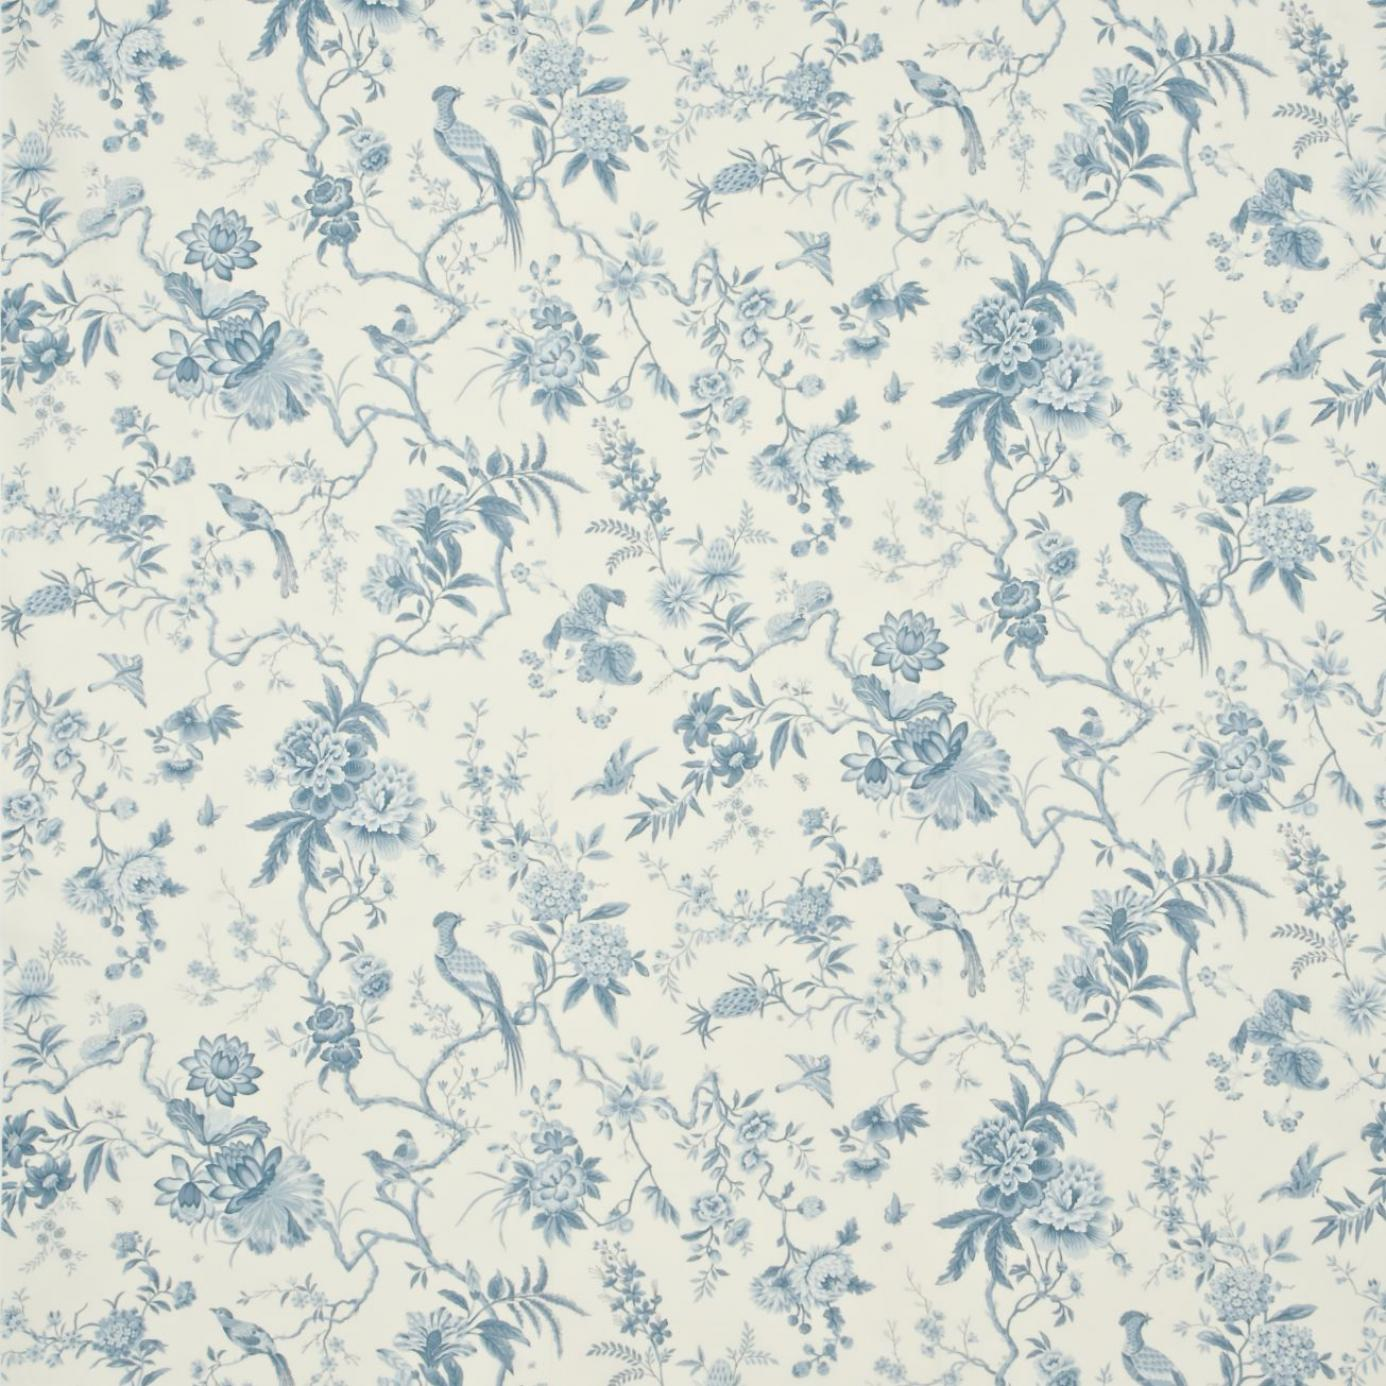 Roman Blinds In Pillemont Toile Fabric Ivory China Blue